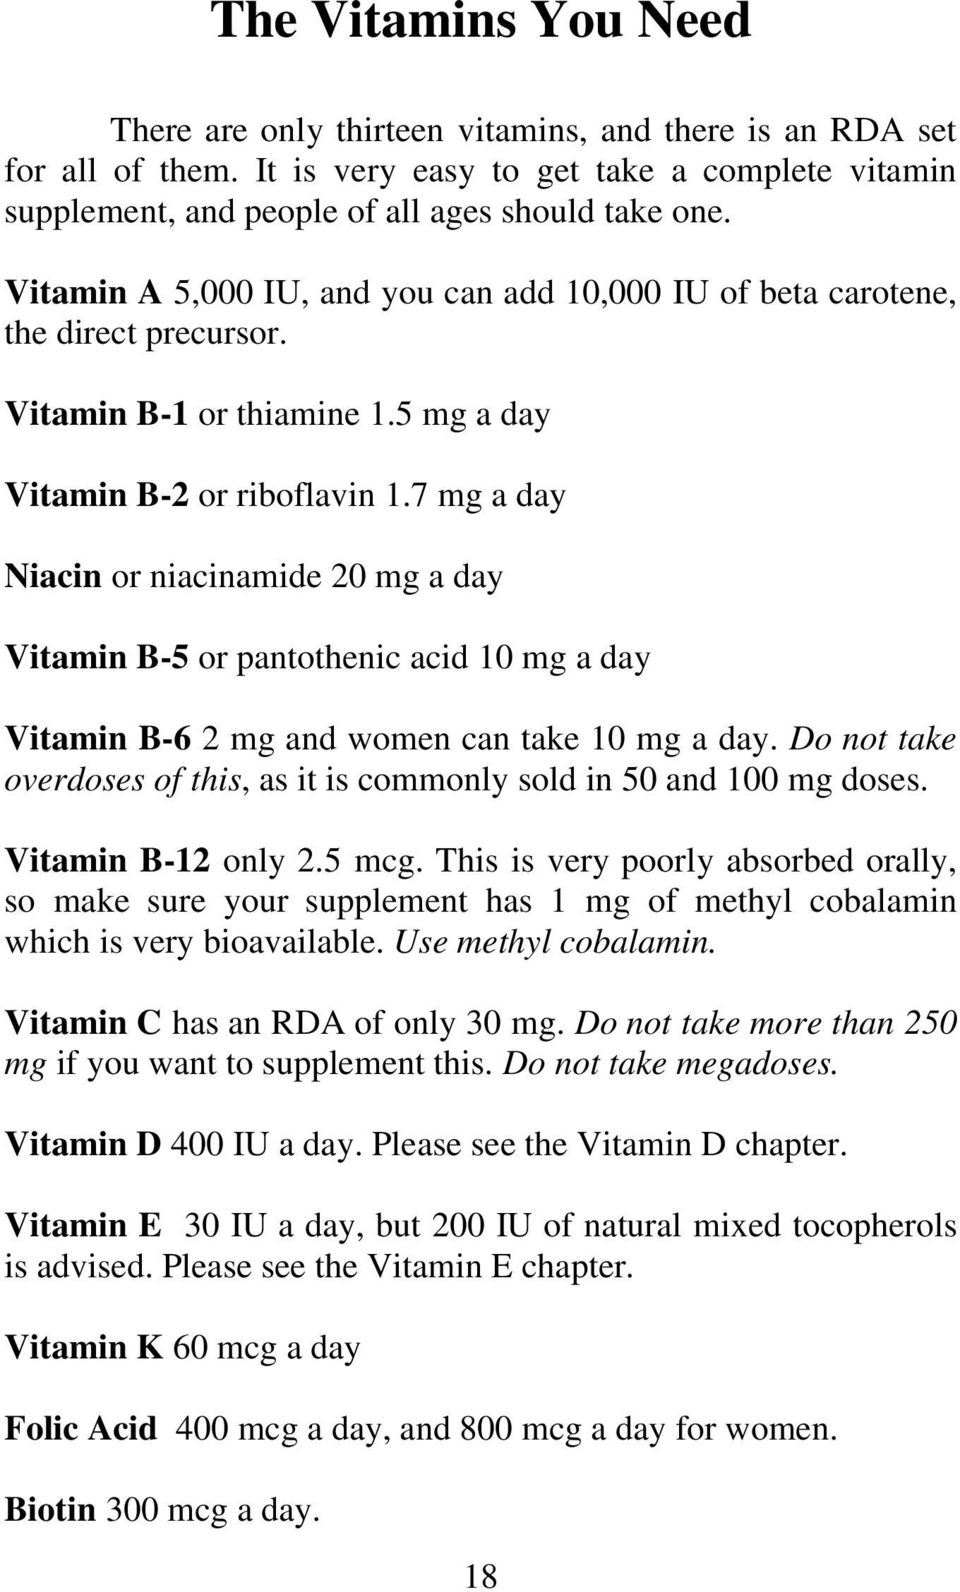 7 mg a day Niacin or niacinamide 20 mg a day Vitamin B-5 or pantothenic acid 10 mg a day Vitamin B-6 2 mg and women can take 10 mg a day.